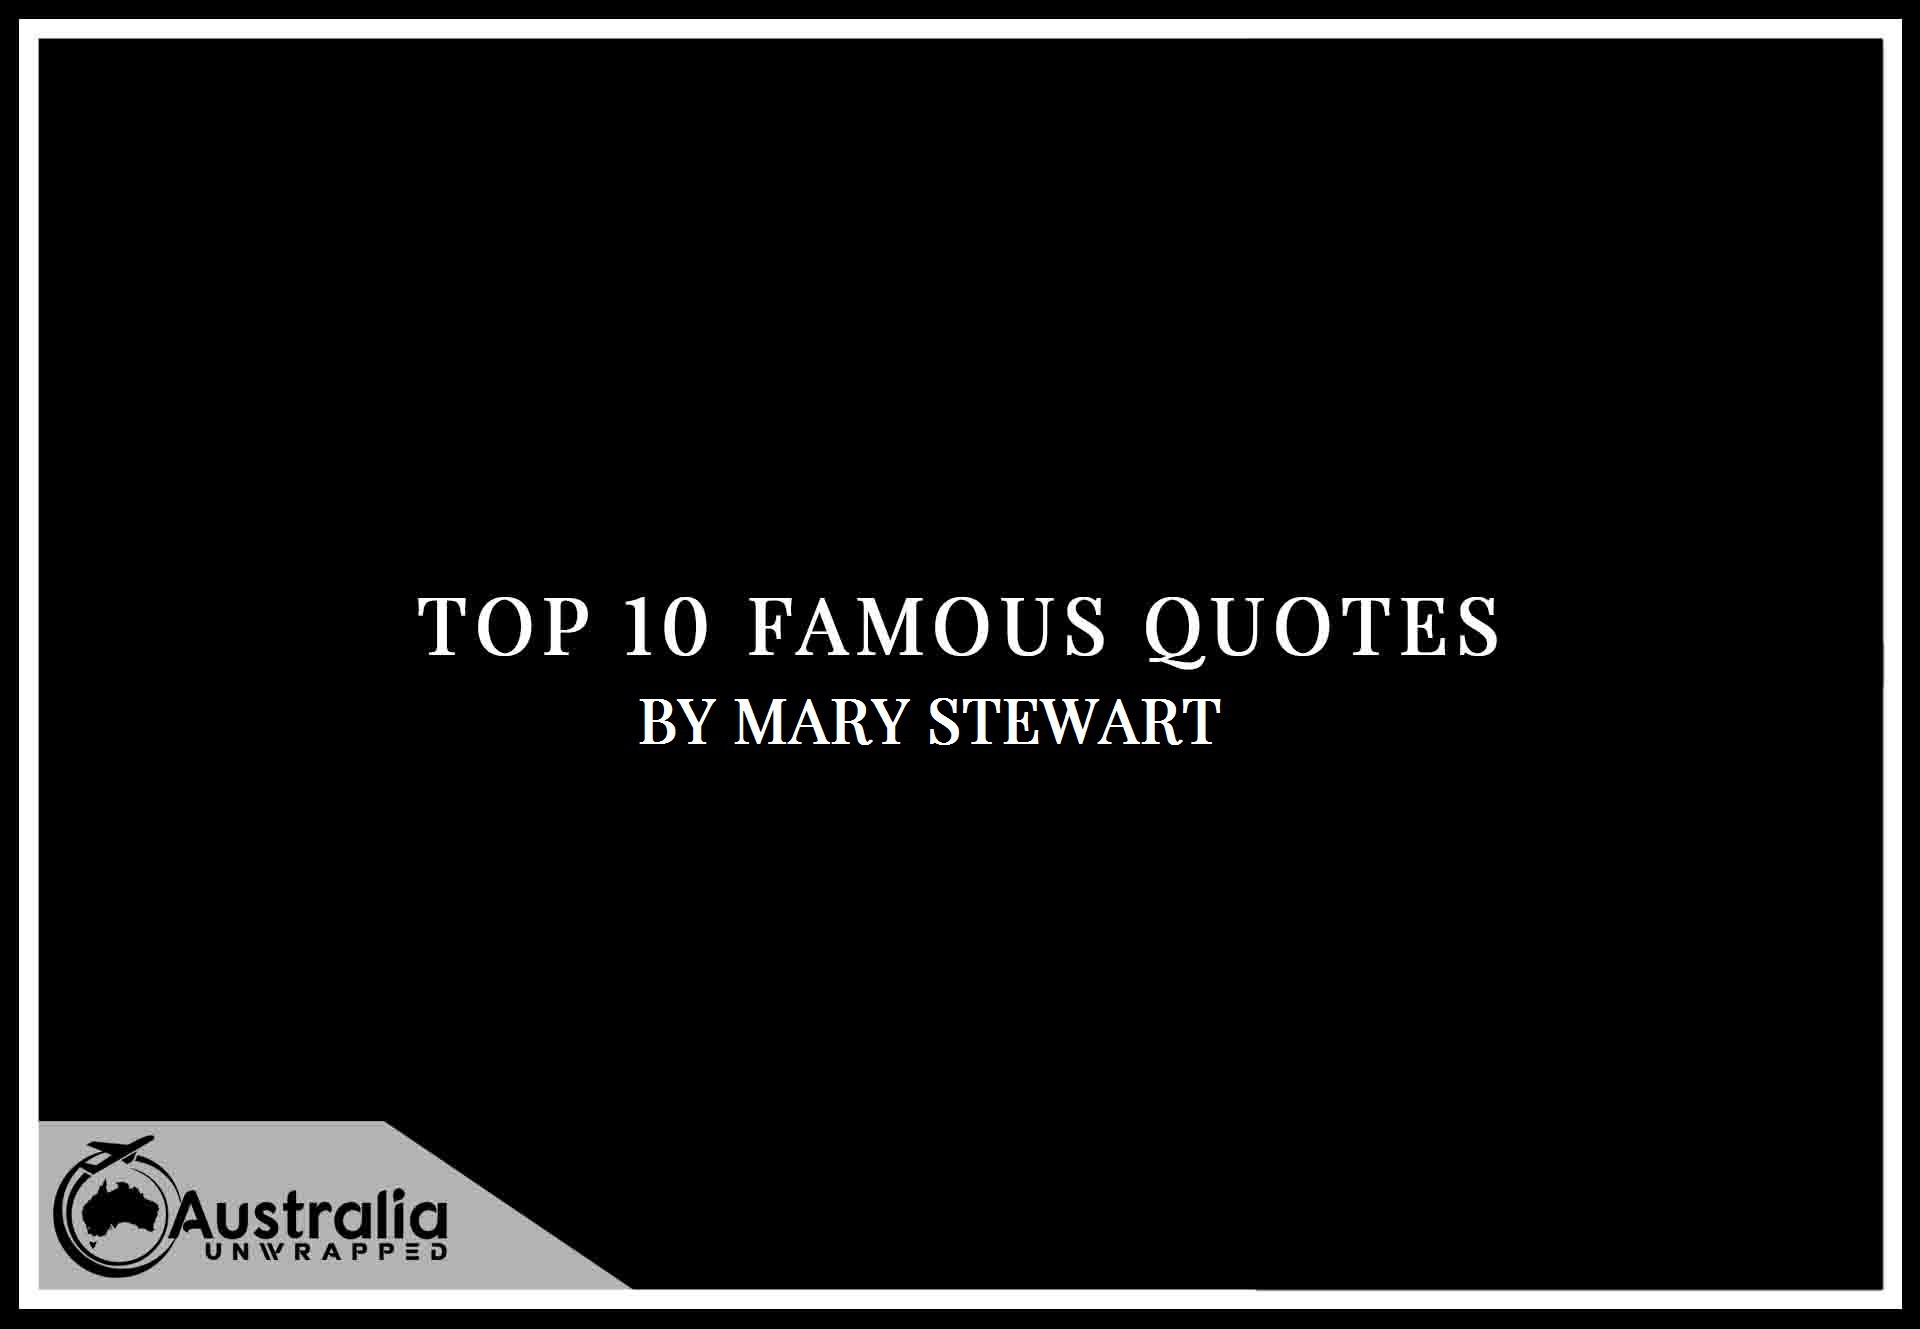 Mary Stewart's Top 10 Popular and Famous Quotes